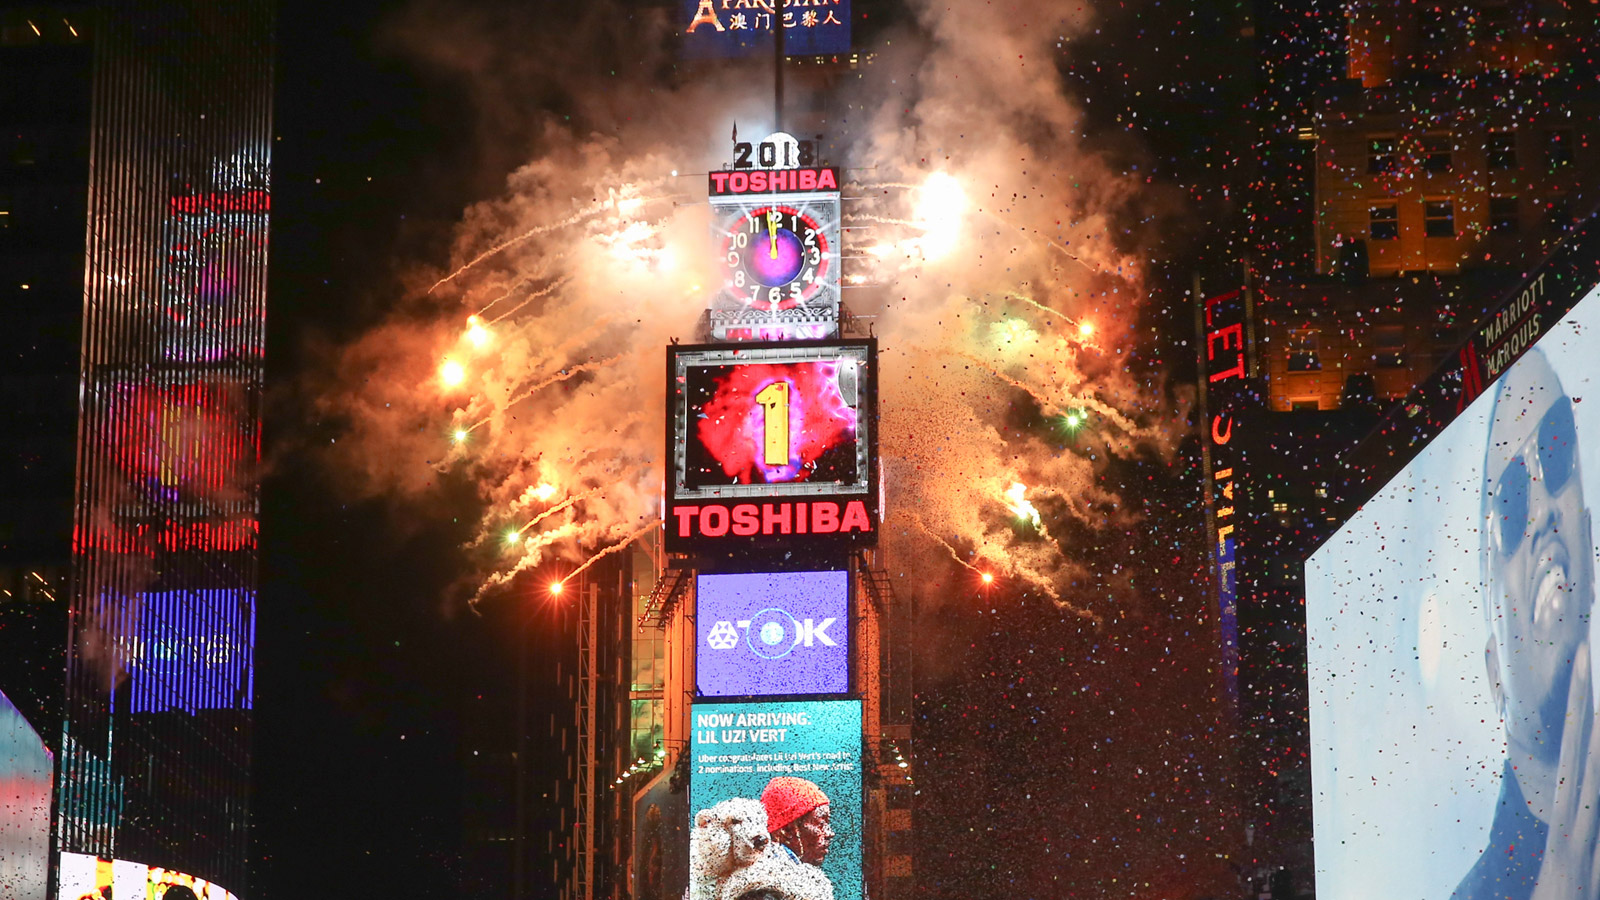 The ball drops during the New Year's Eve celebration in Times Square